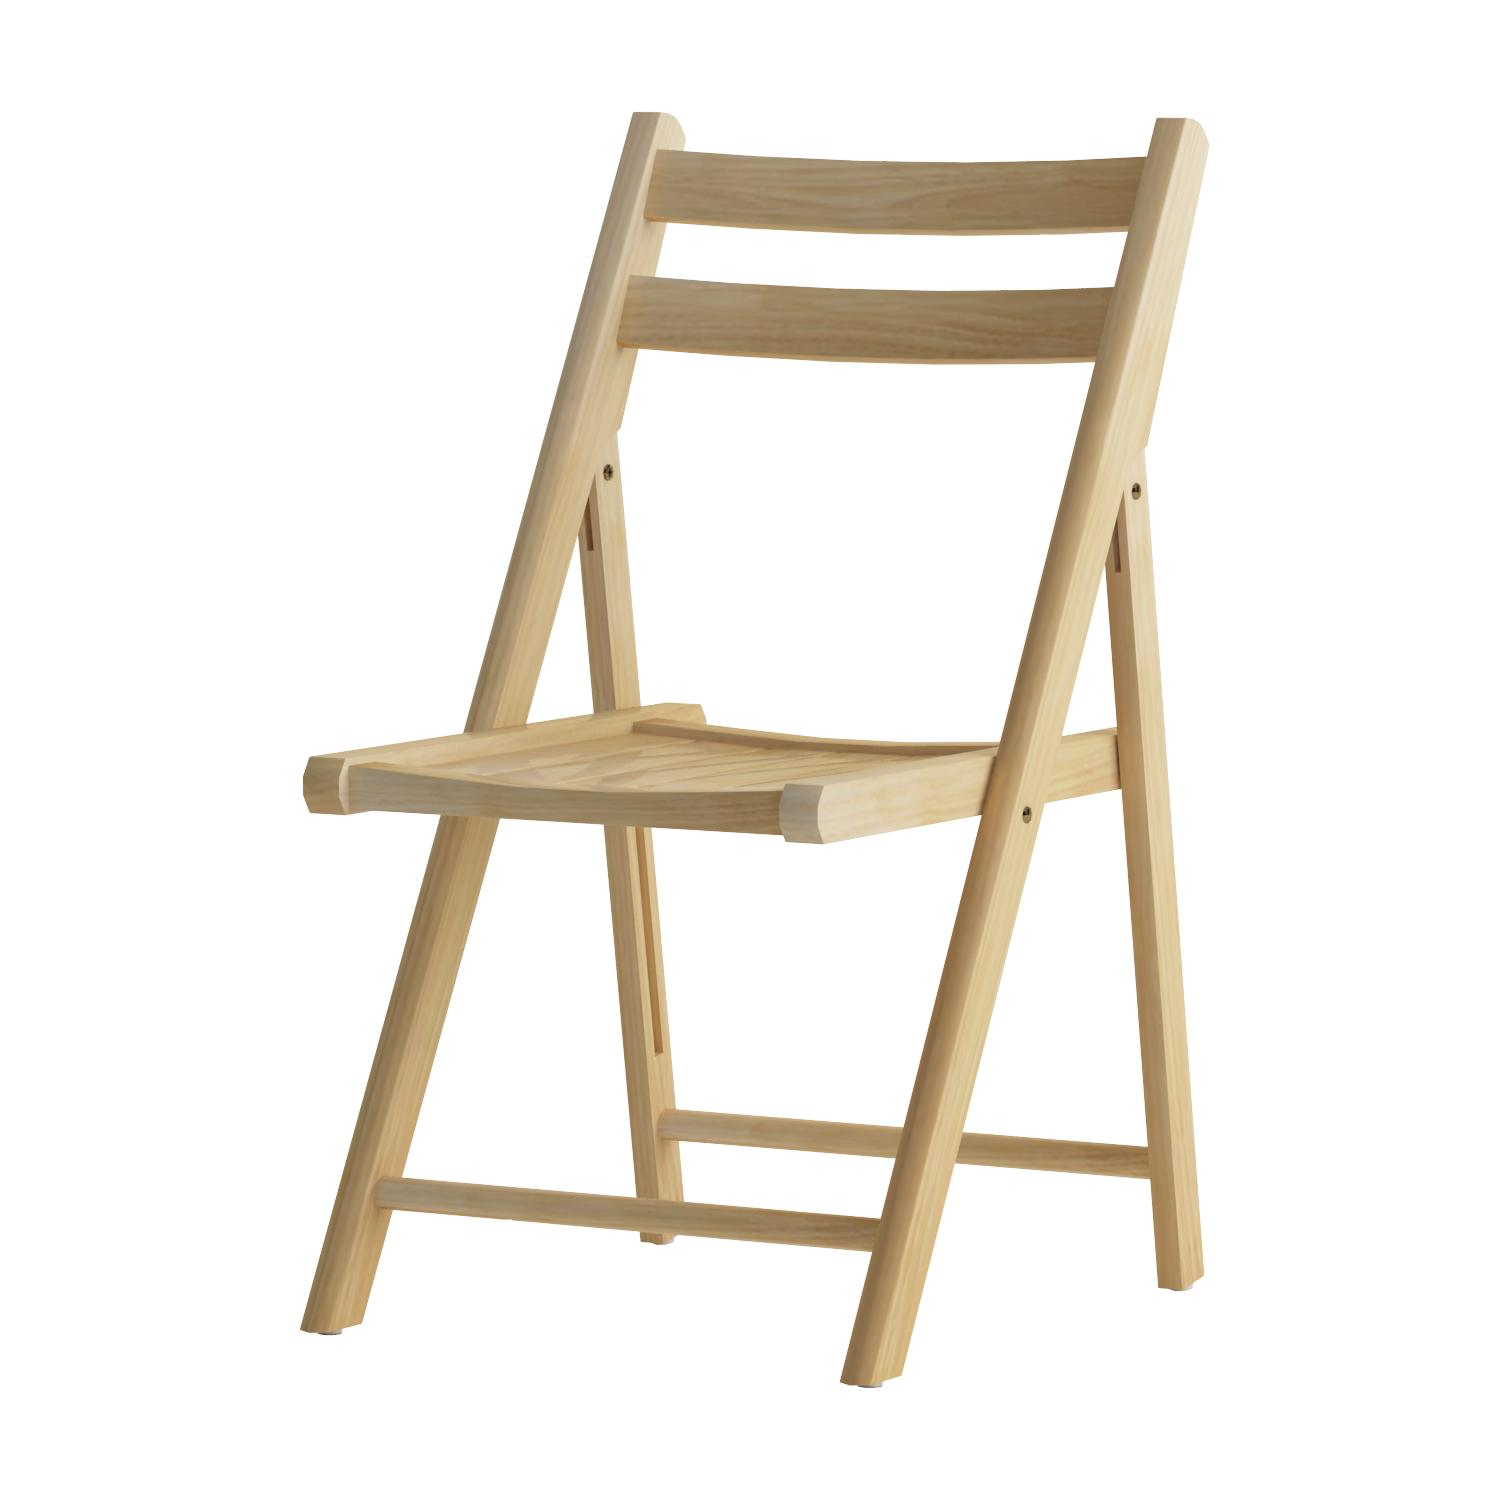 12 people when using folding chairs 12 people should fit comfortably - Amazon Com Winsome Wood Folding Chairs Natural Finish Set Of 4 Chairs